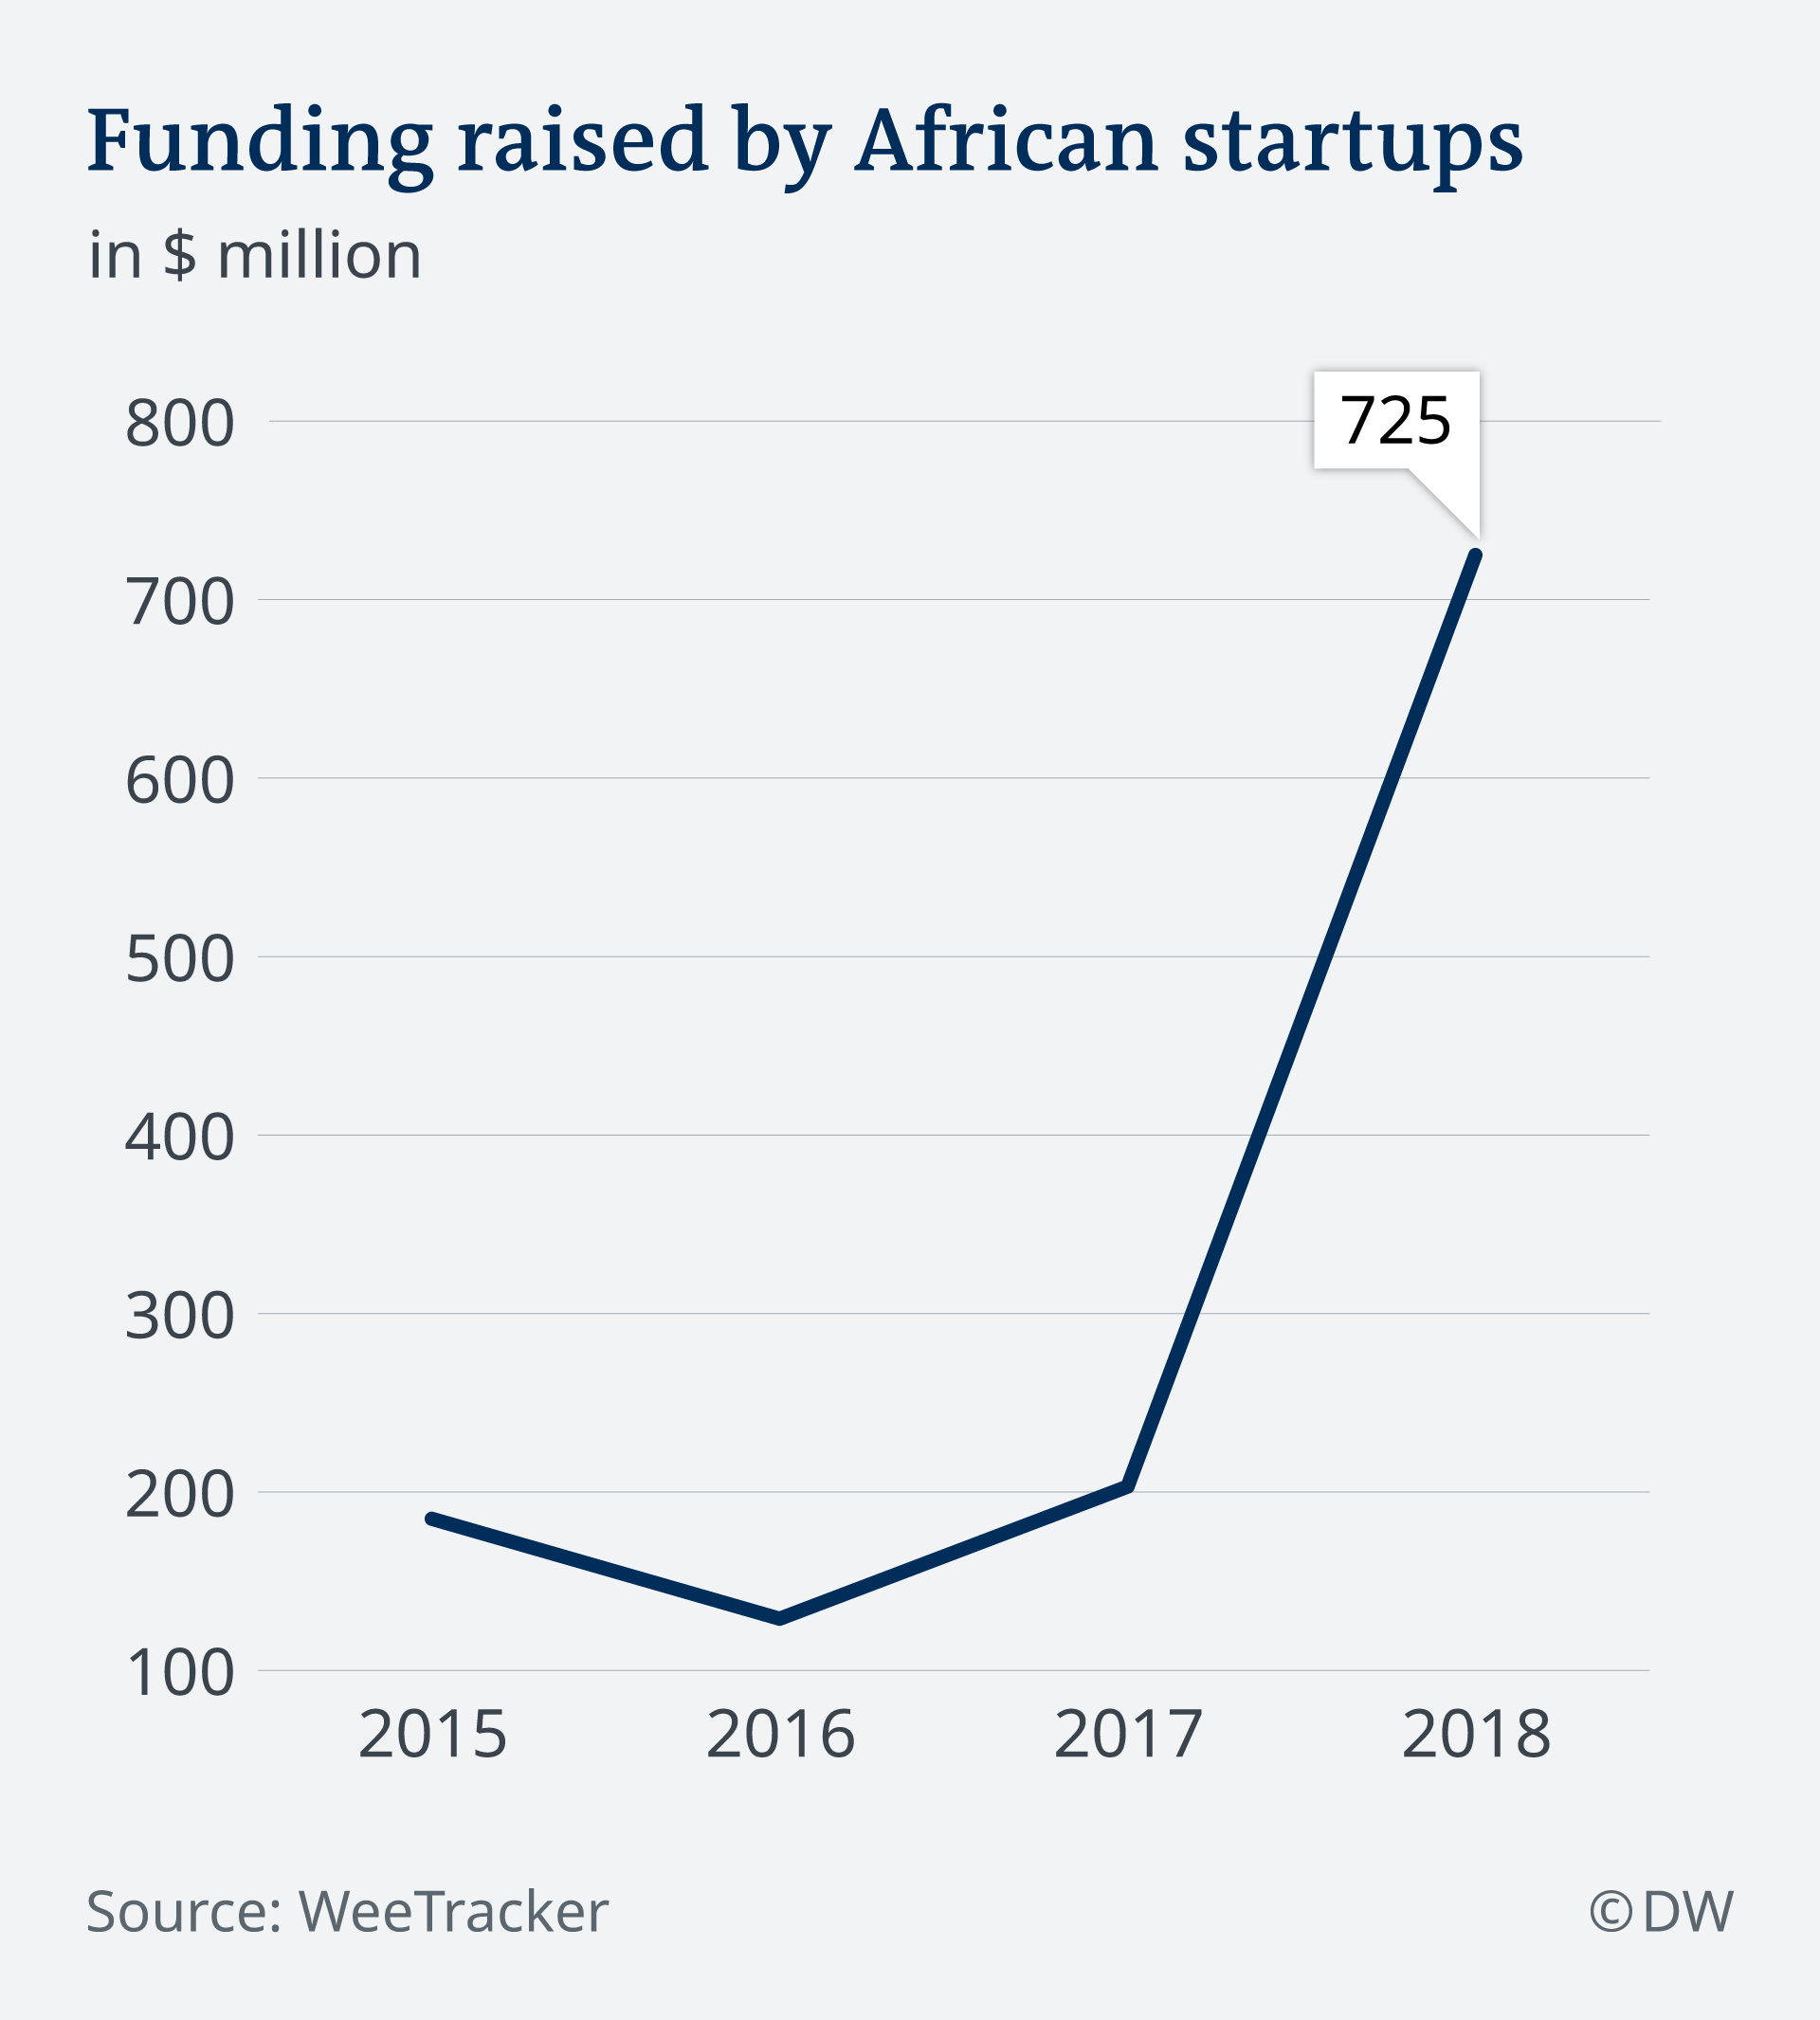 Infographic showing a sharp increase in funding for African startups since 2017 E